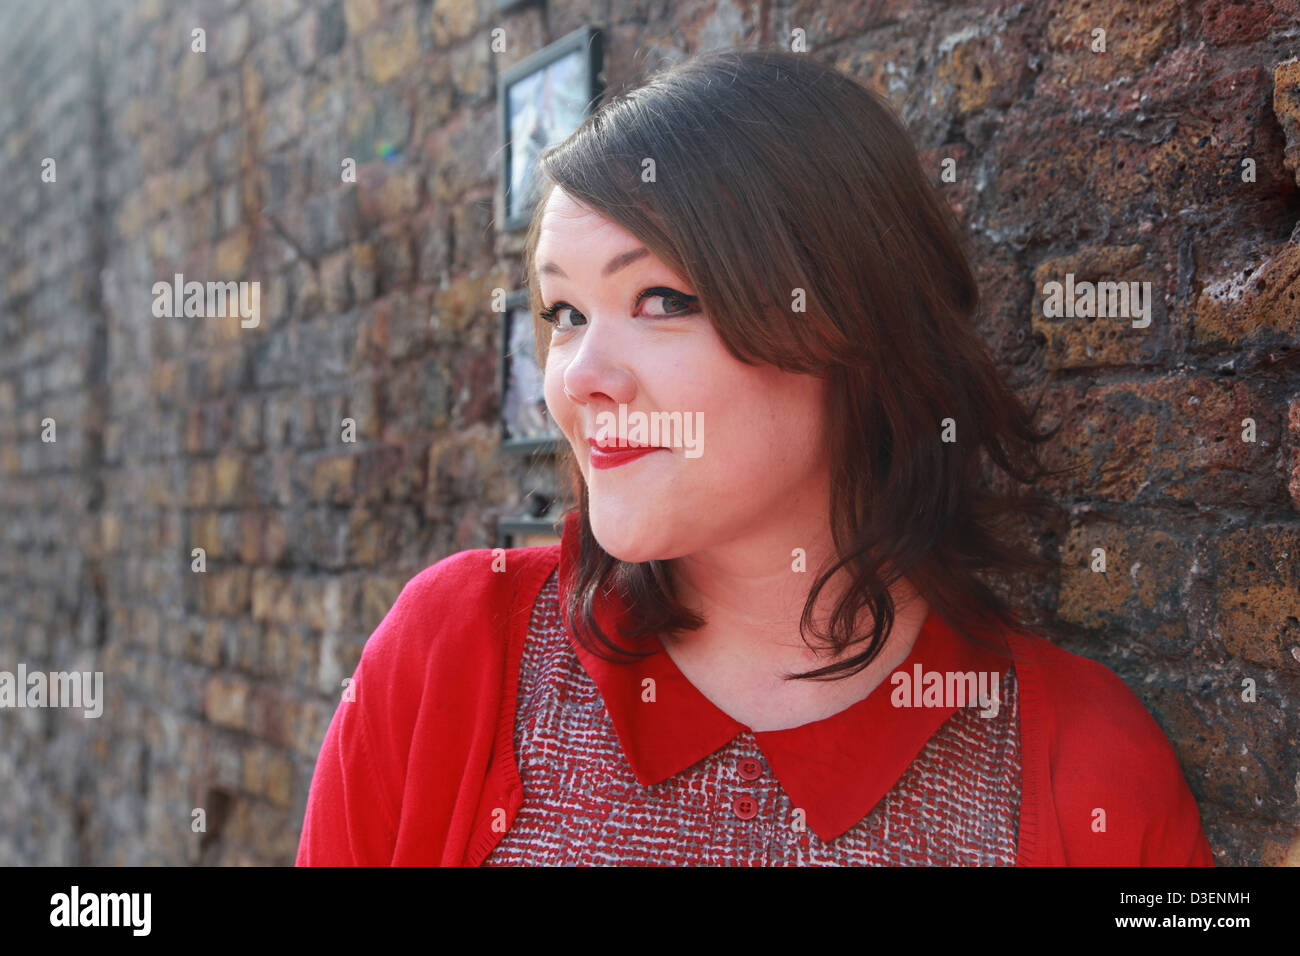 Female in front of colourful wall,Brick Lane, East London E1 Stock Photo